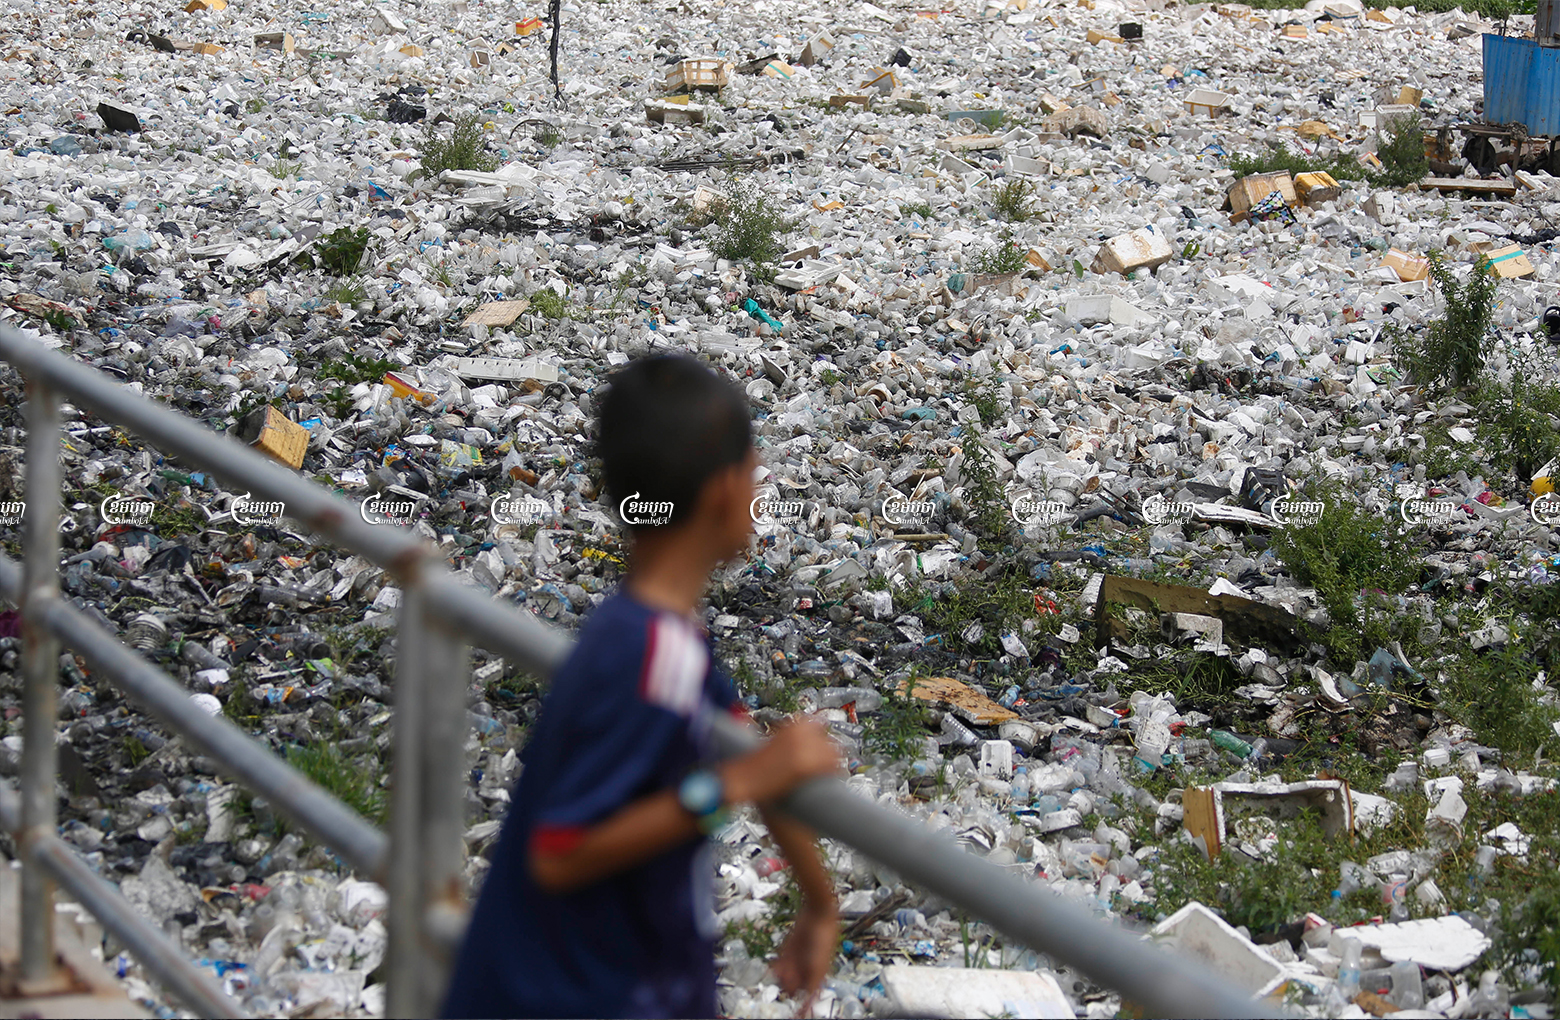 A boy looks at the garbage filling Boeung Tompun lake, a wetland that has been taken over by a massive development, Picture taken on June 28, 2018. CamboJA/ Pring Samrang